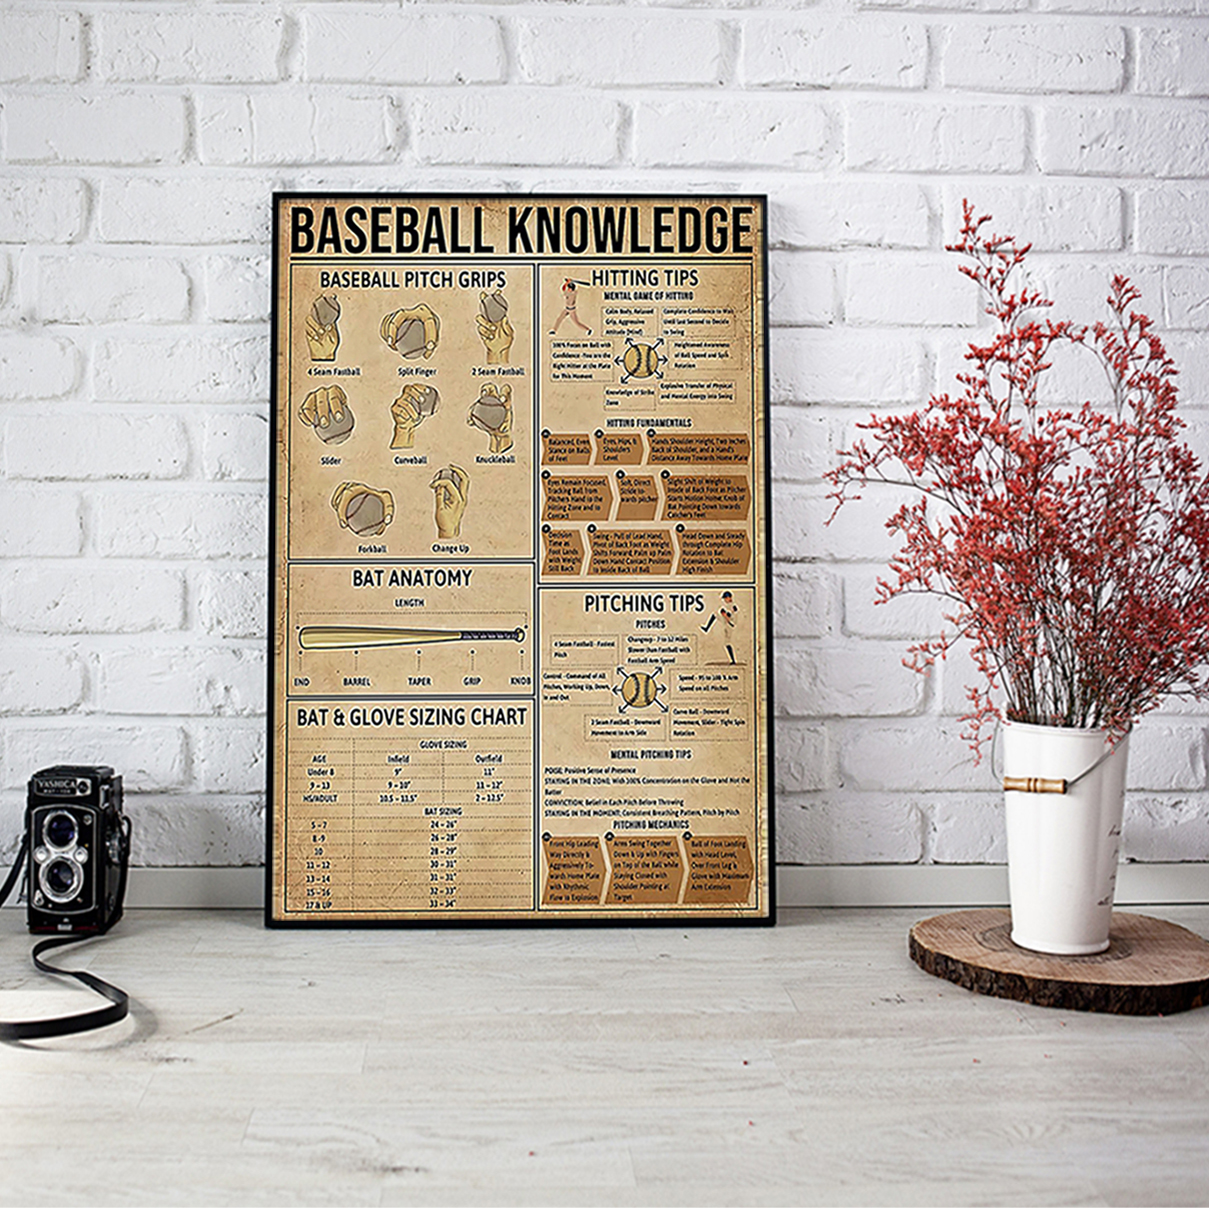 Baseball knowledge poster A2